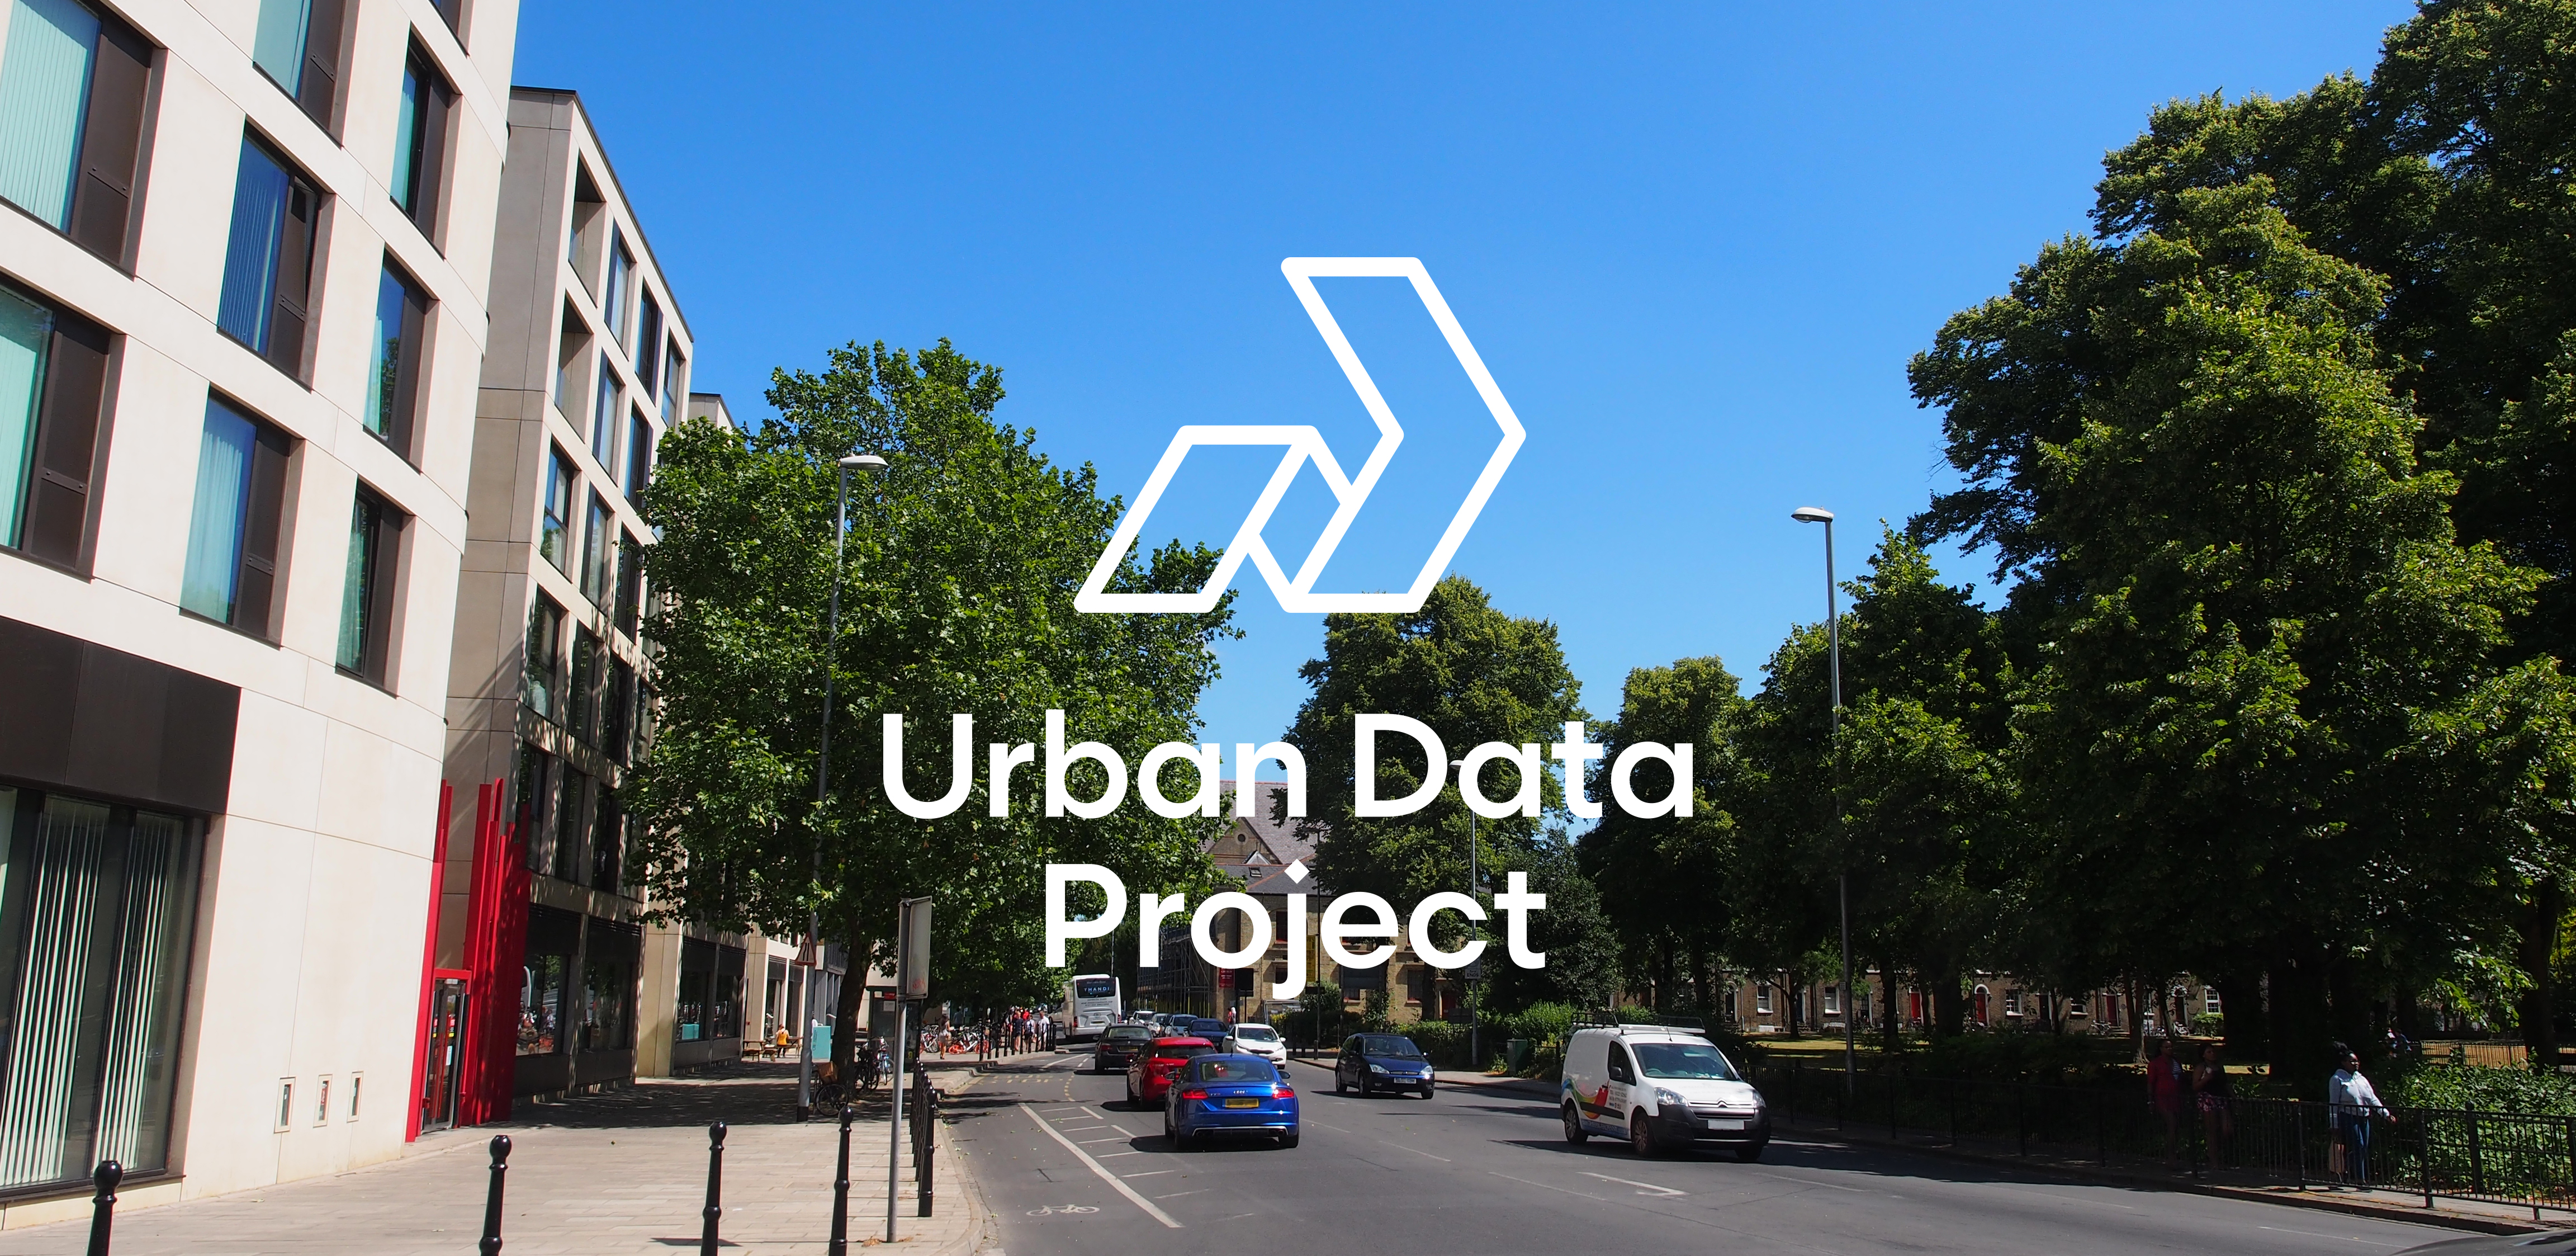 Telensa Announces the Urban Data Project with Cambridge as Launch Partner City